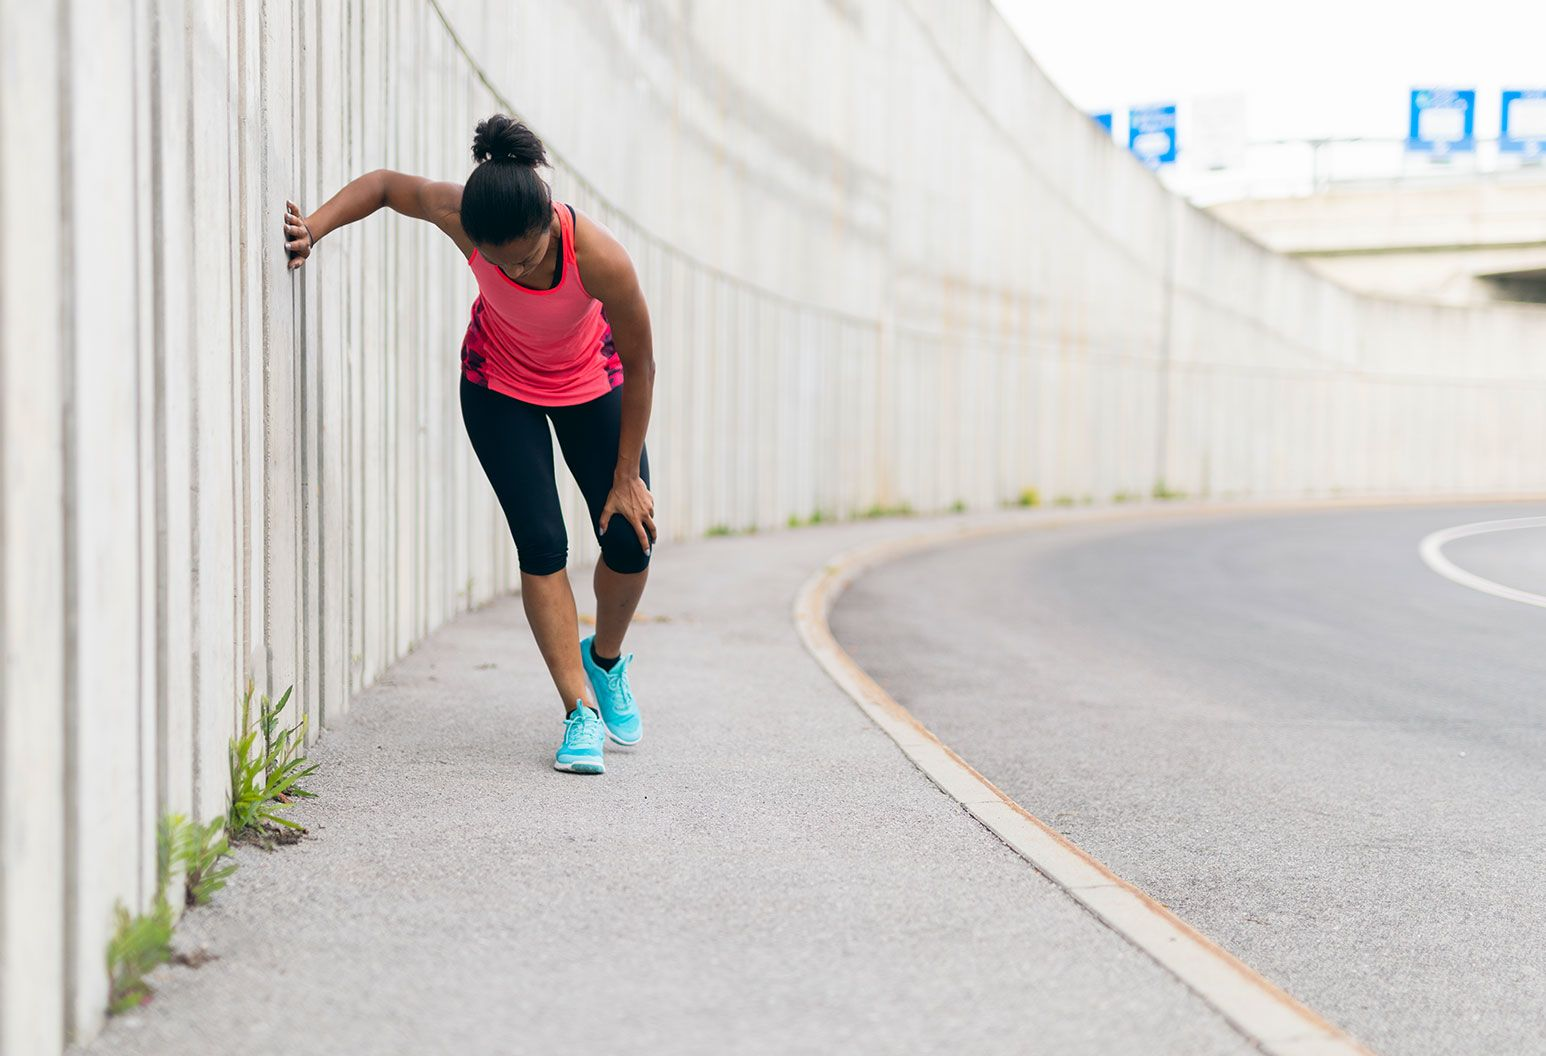 A woman in a jogging outfit leans against a wall outside and she rubs her knee. She is wearing a jogging outfit - pink top, black tights, and aqua blue sneakers.